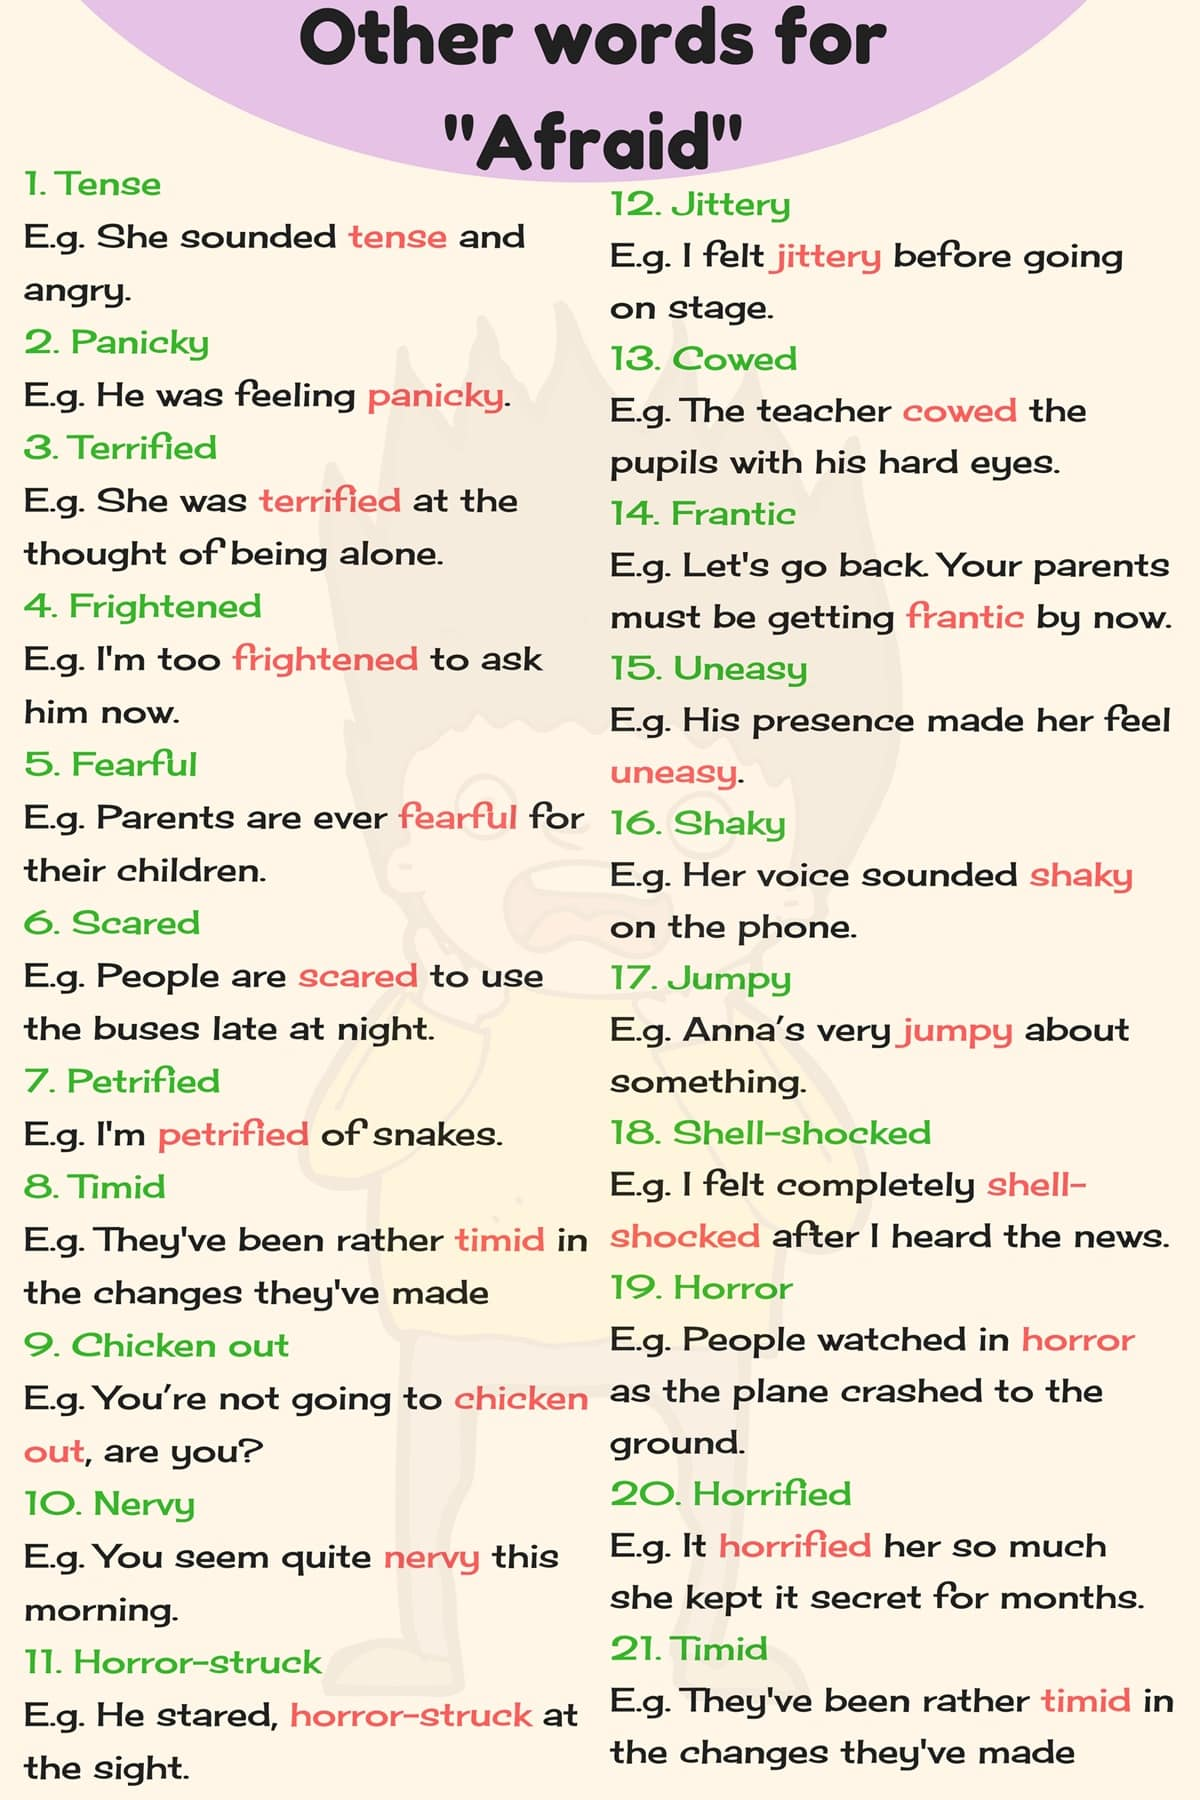 Other Ways To Say Common Things in English 5